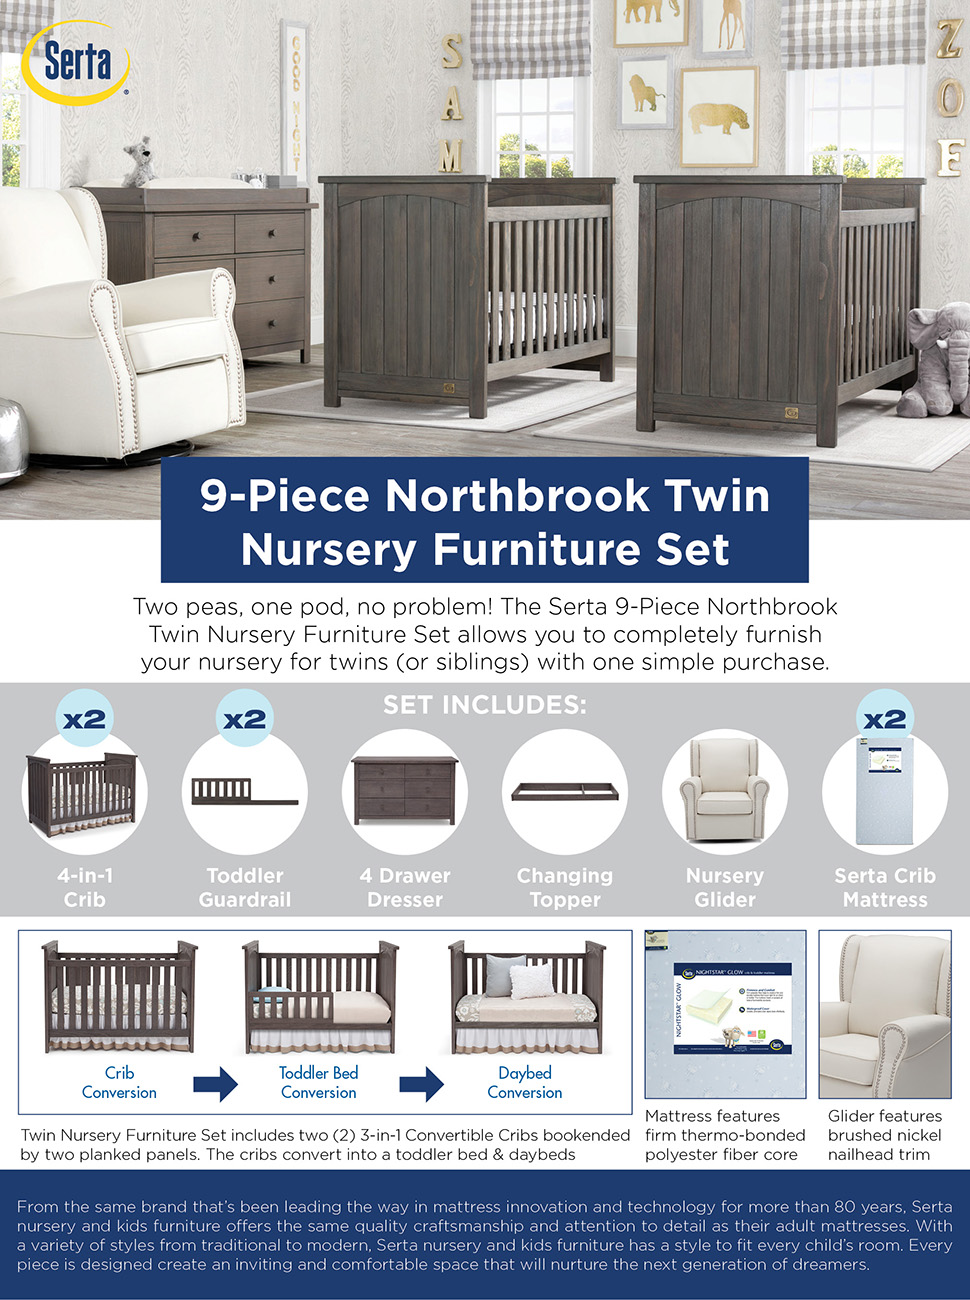 twins nursery furniture gray the serta 9piece northbrook twin nursery furniture set allows you to completely furnish your nursery for twins or siblings with one simple purchase amazoncom baby twins